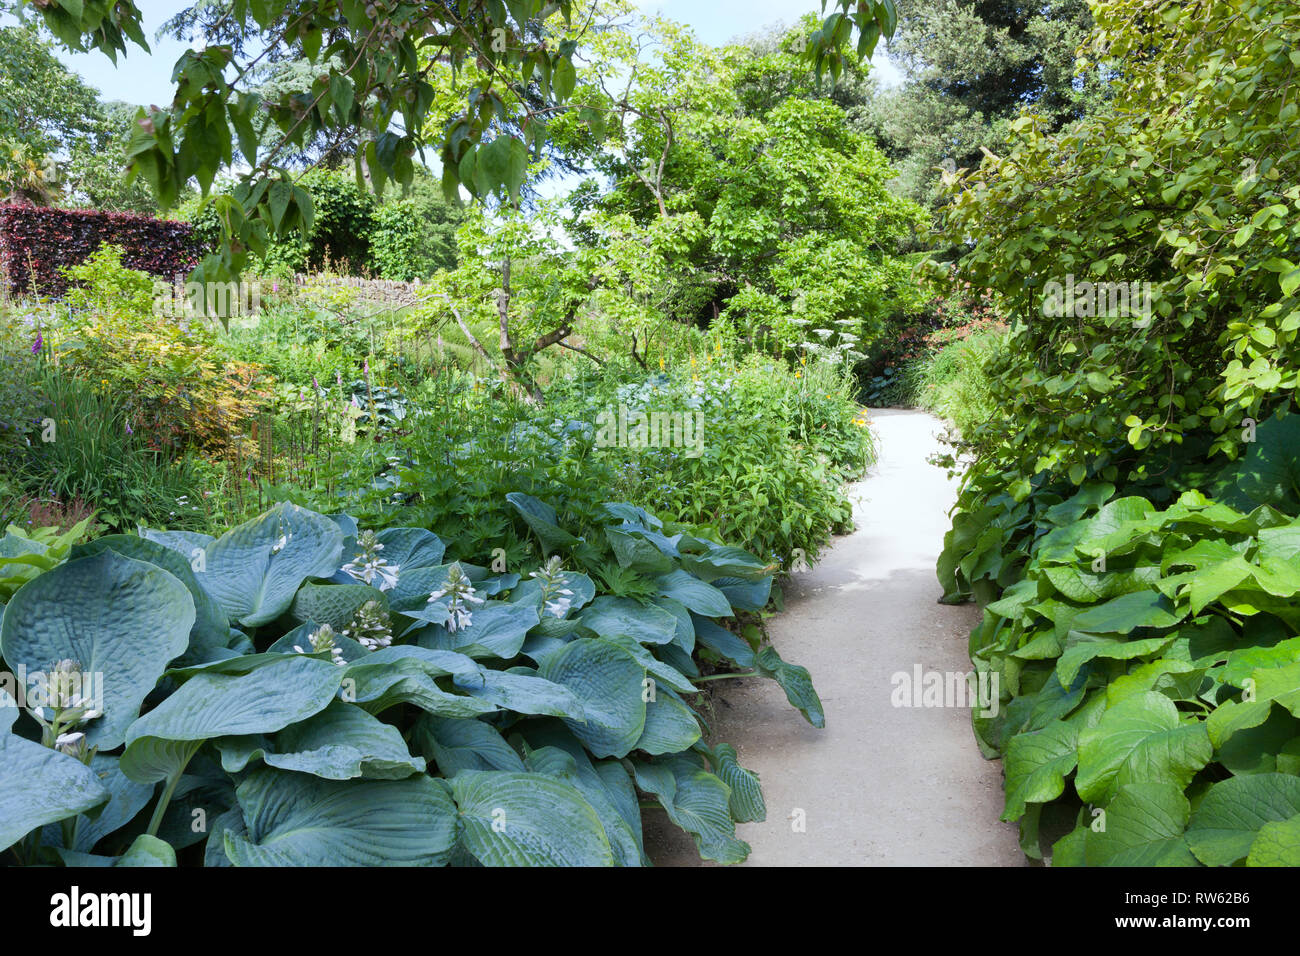 Gravel Path Through Flowers Shrubs And Trees In A Lush English